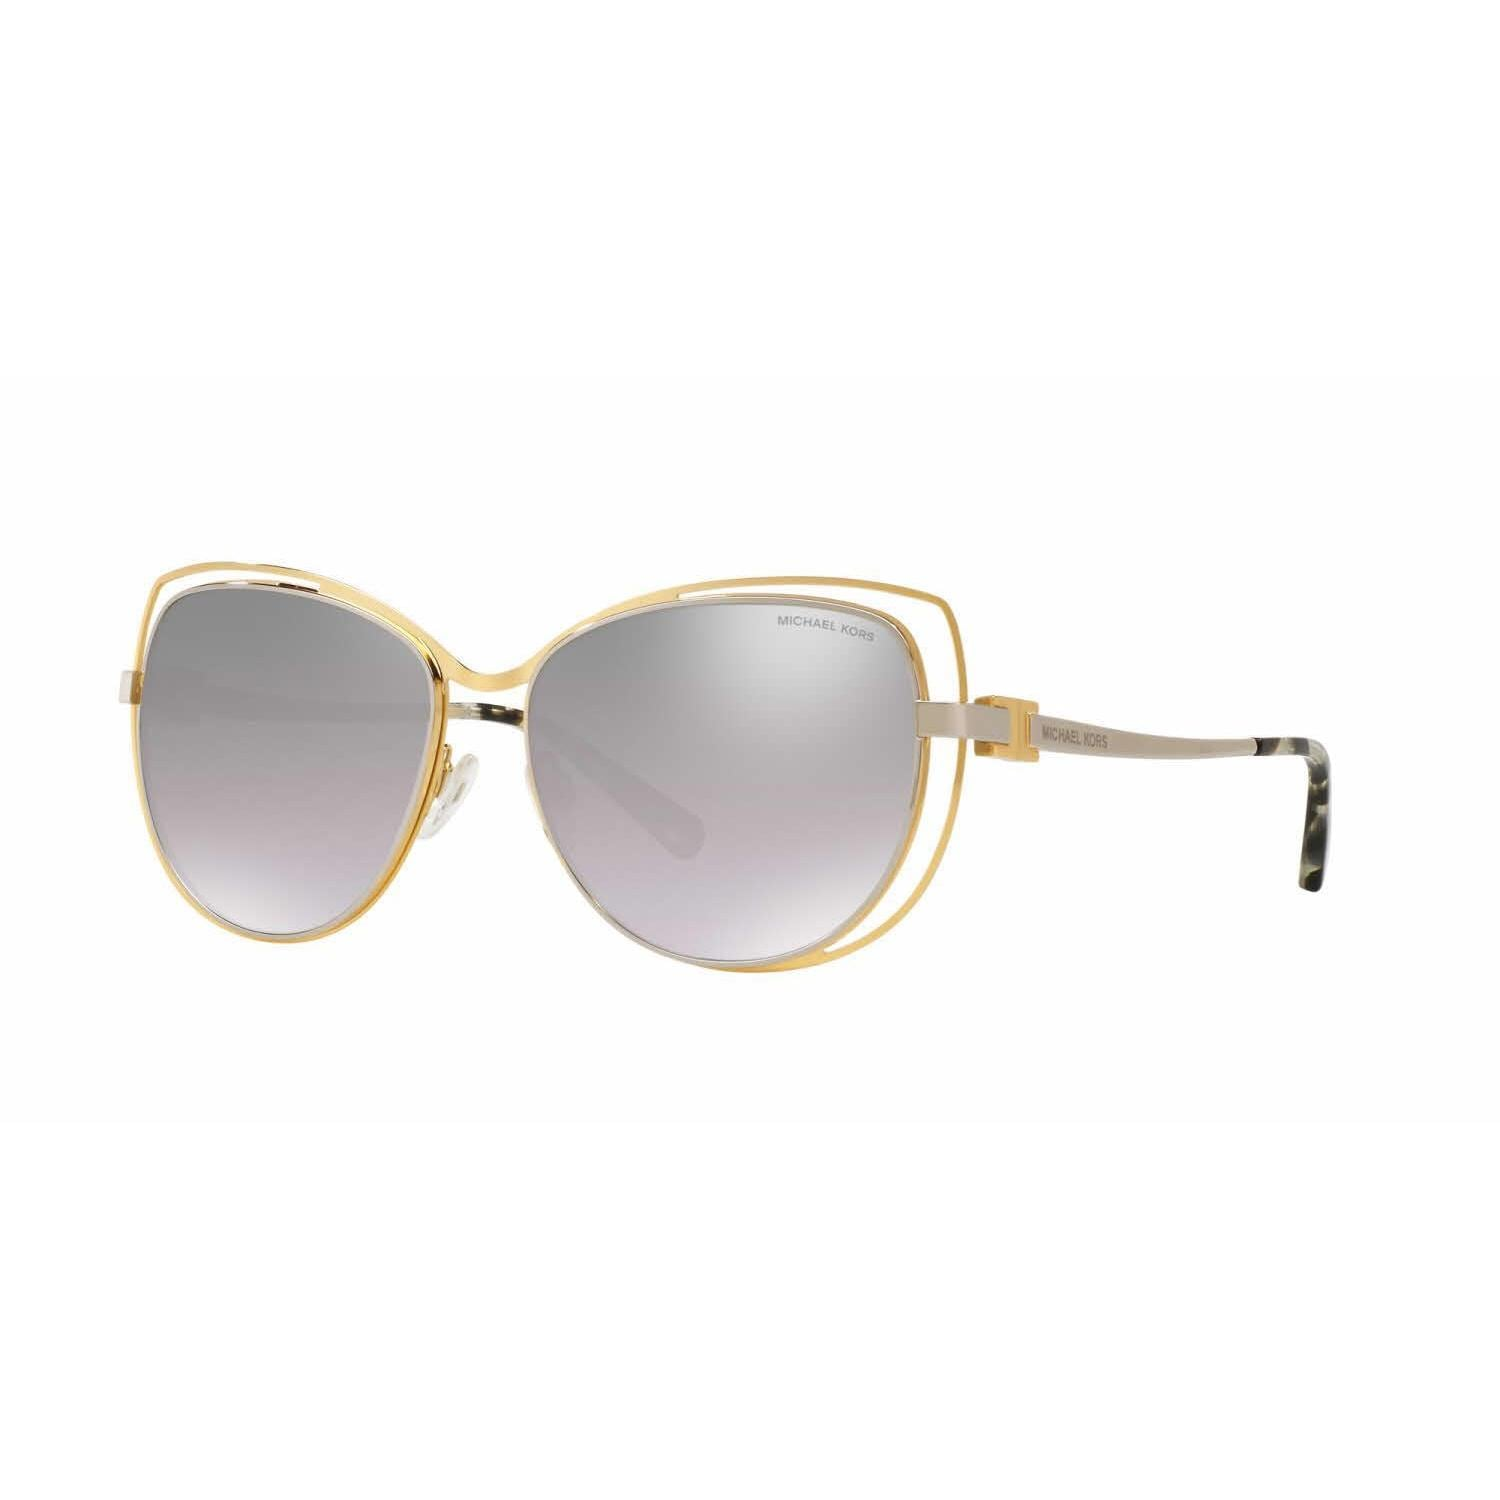 19951afbfb Shop Michael Kors Women MK1013 AUDRINA I 11196V Gold Metal Cat Eye  Sunglasses - Free Shipping Today - Overstock - 13328129